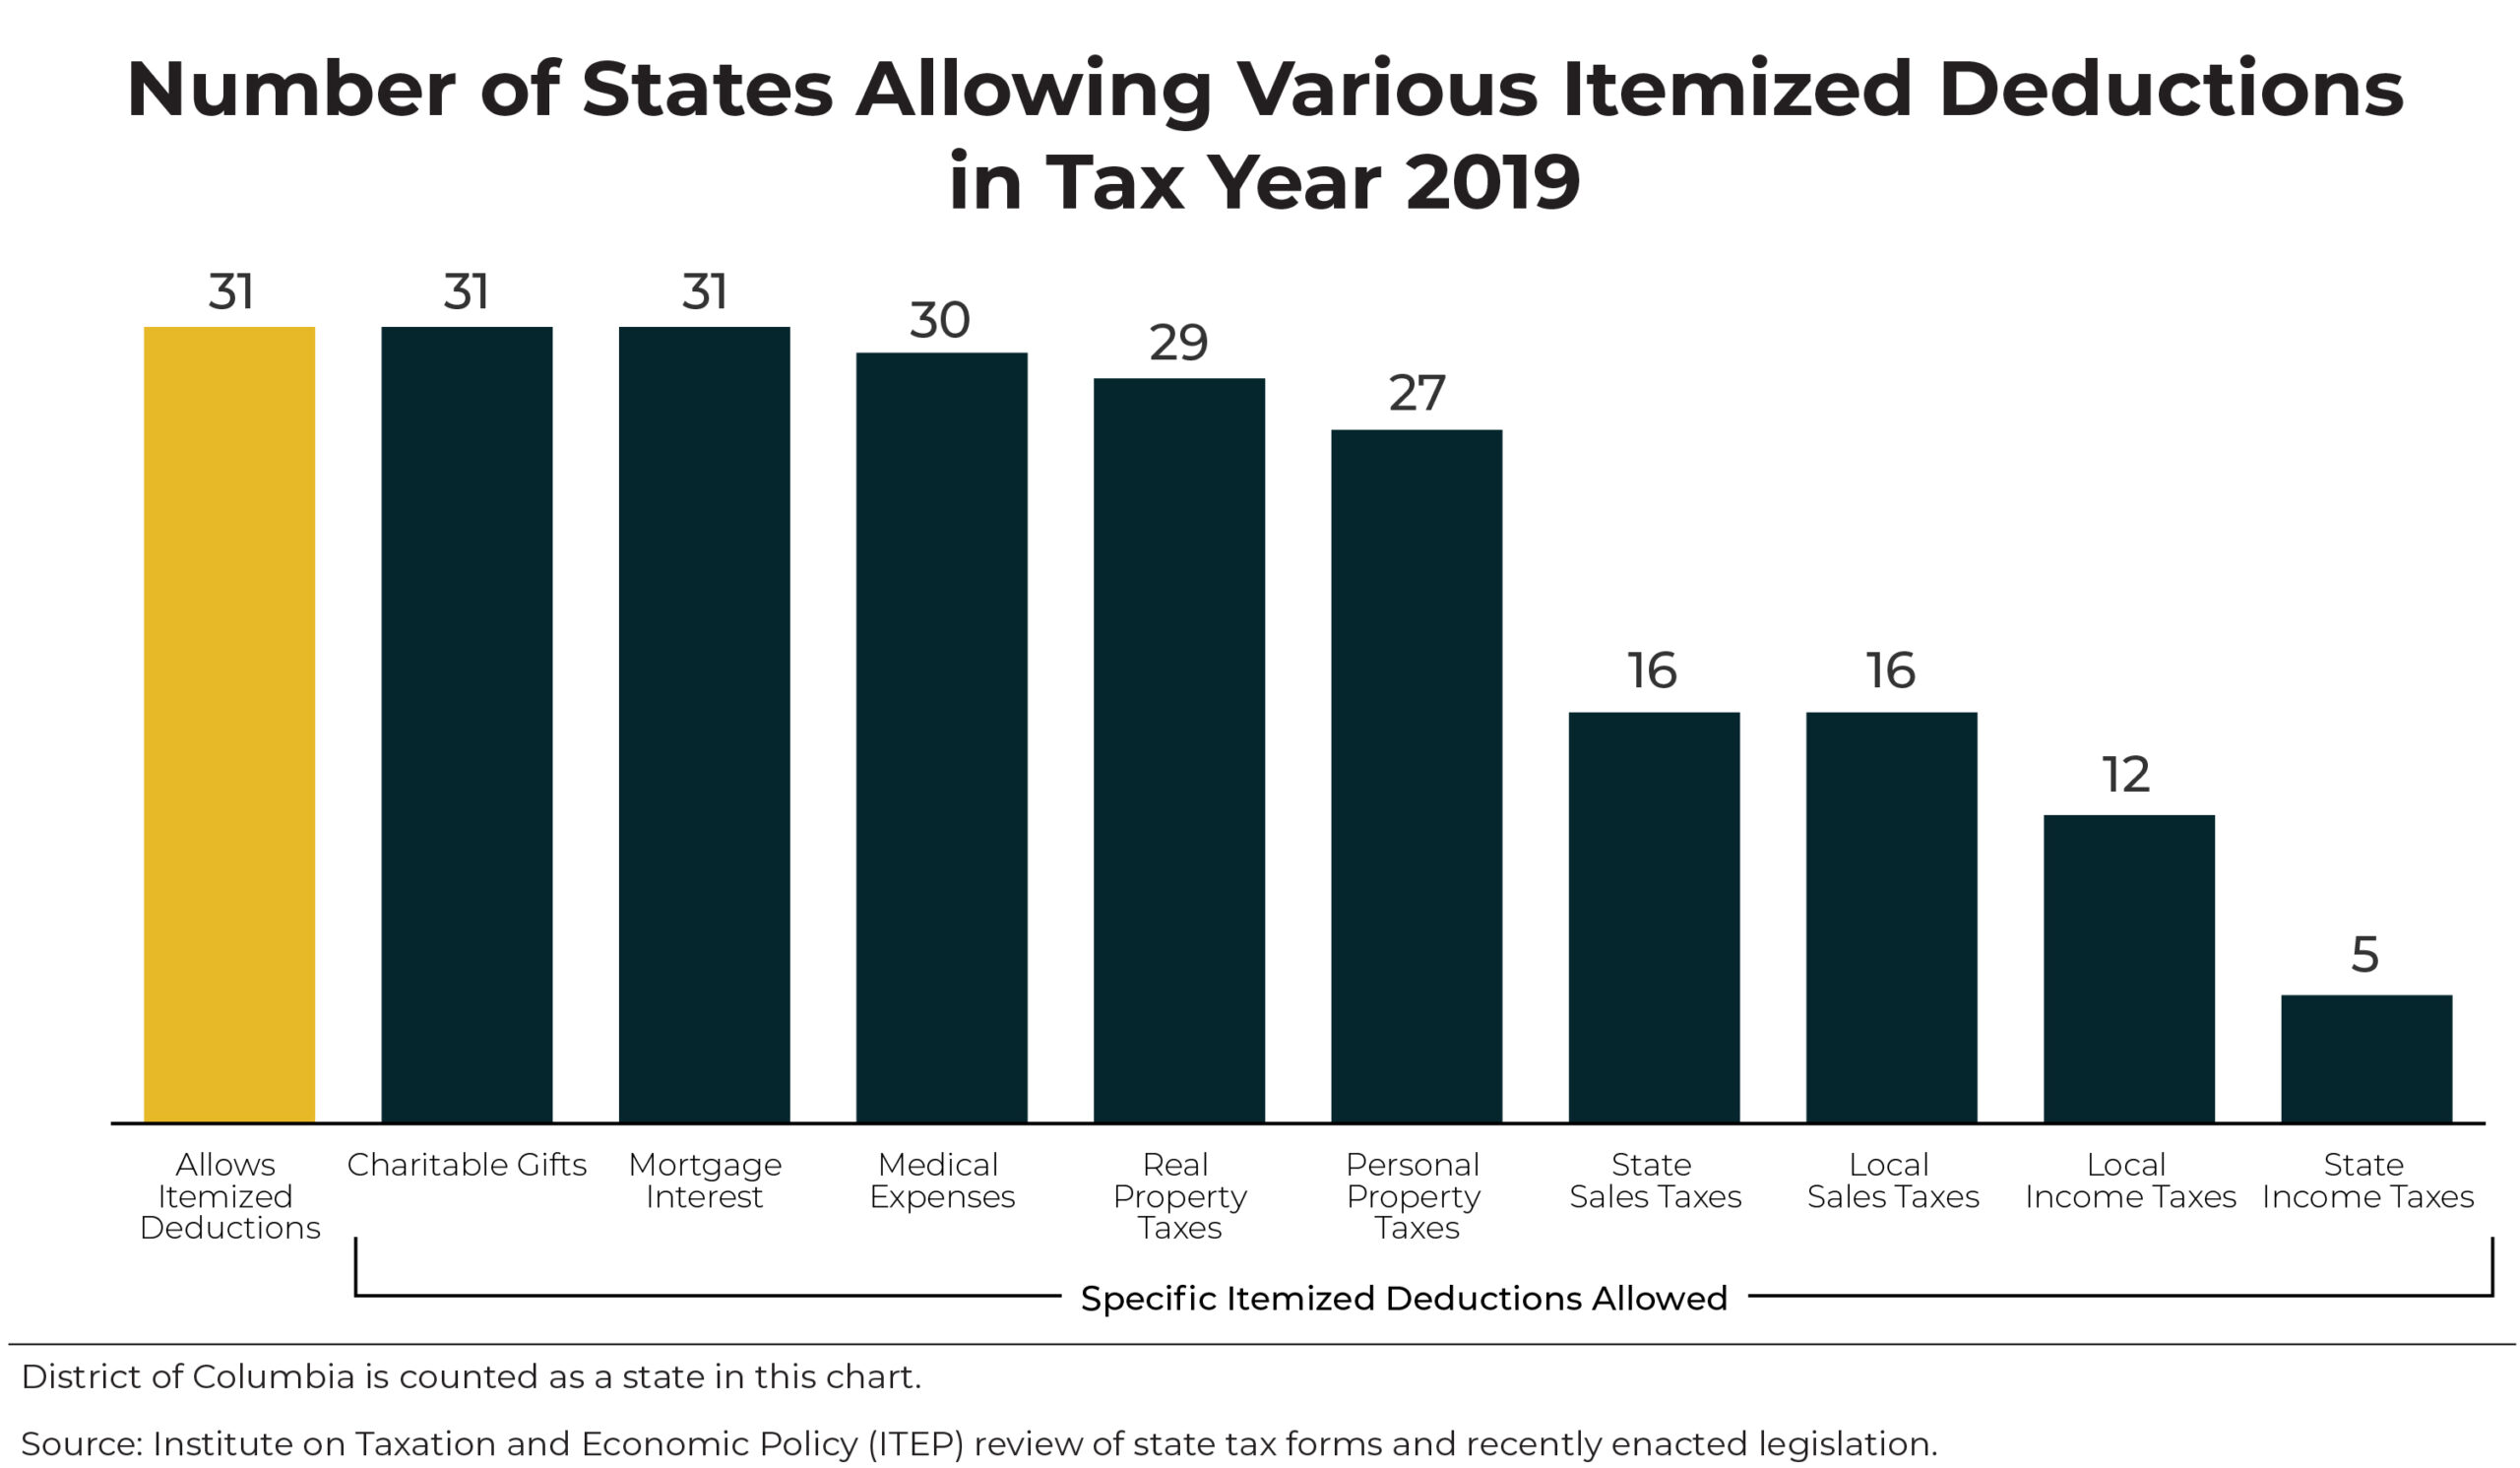 States Can Make Their Tax Systems Less Regressive by Reforming or Repealing Itemized Deductions